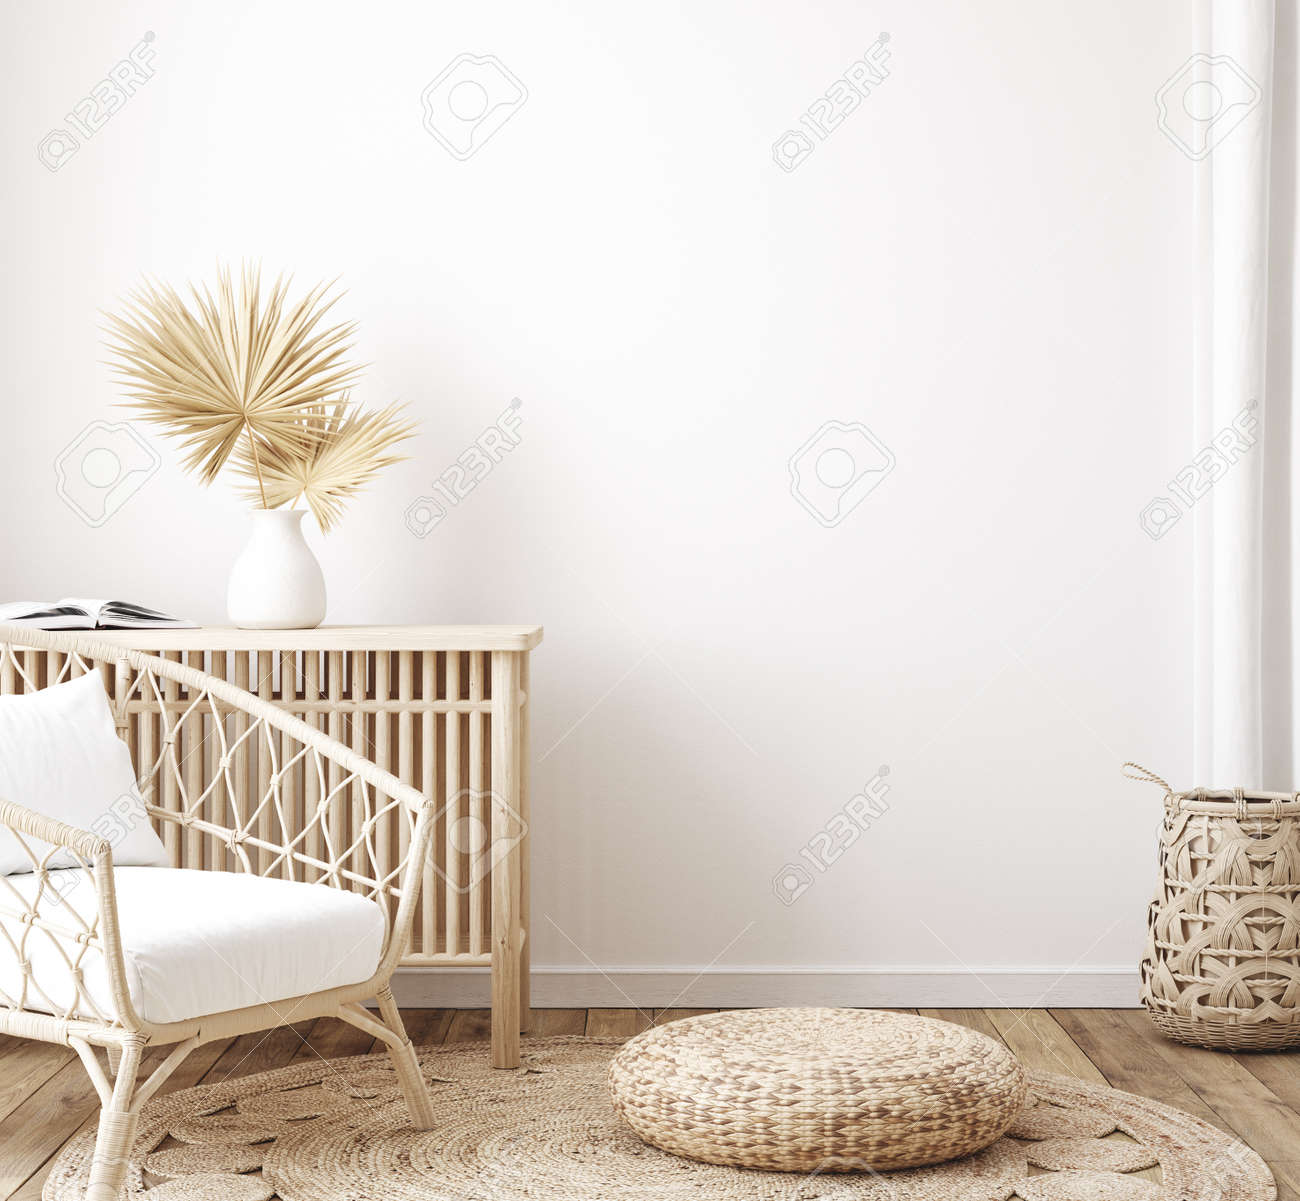 Home interior background, room with minimal decor, 3d render - 168042236